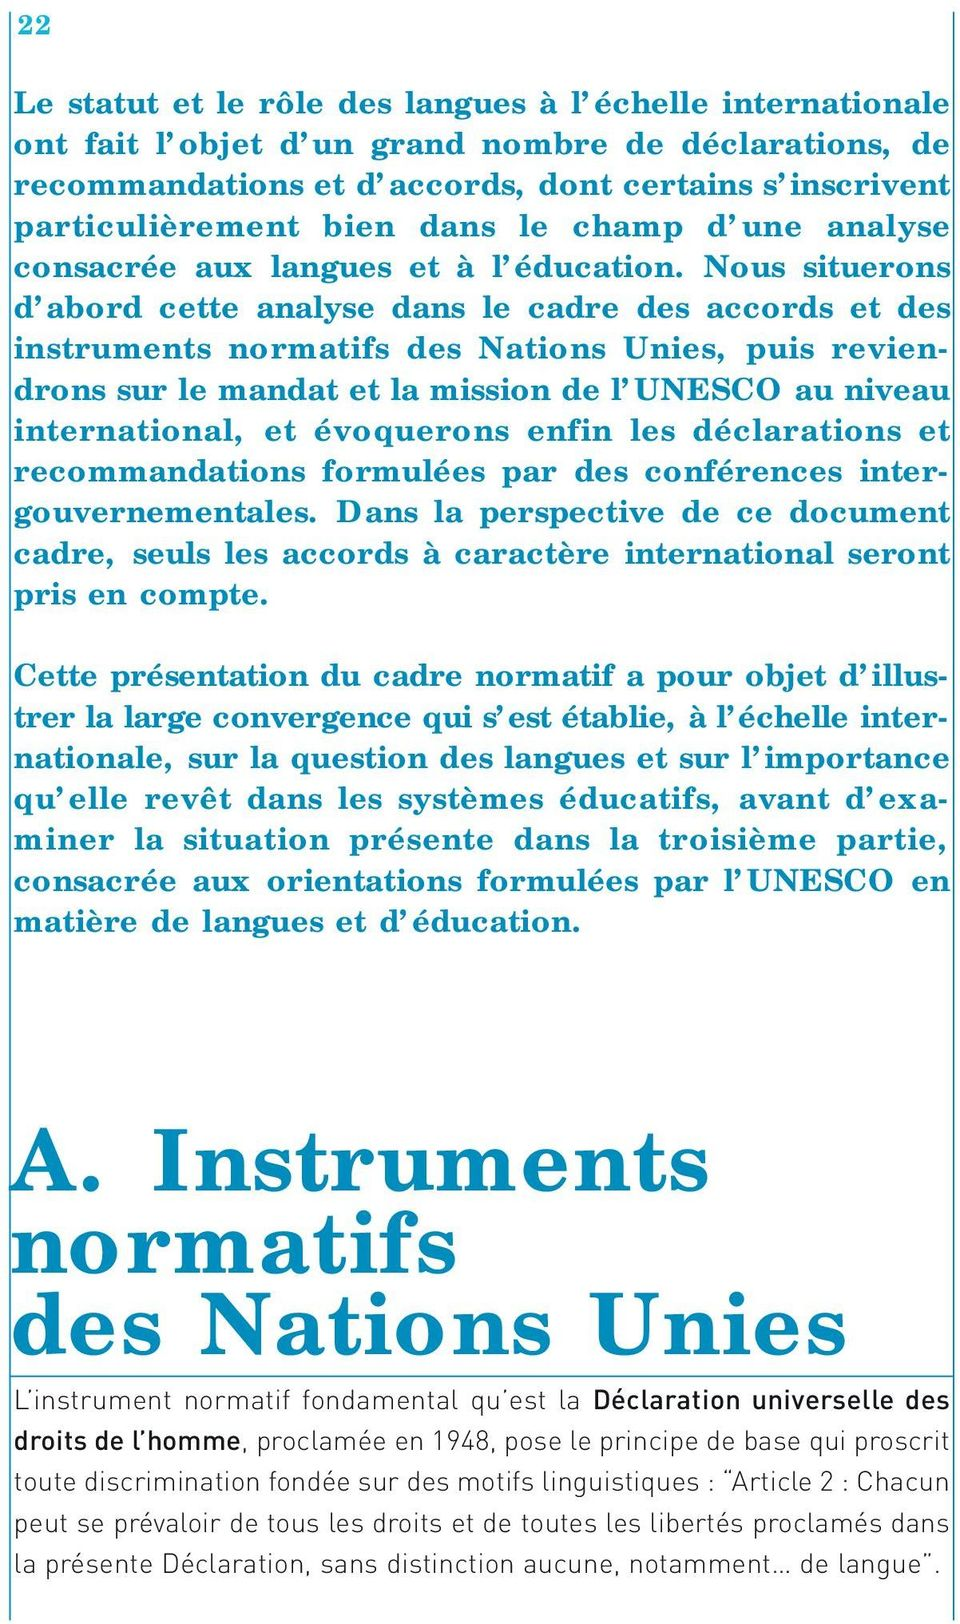 Nous situerons d abord cette analyse dans le cadre des accords et des instruments normatifs des Nations Unies, puis reviendrons sur le mandat et la mission de l UNESCO au niveau international, et